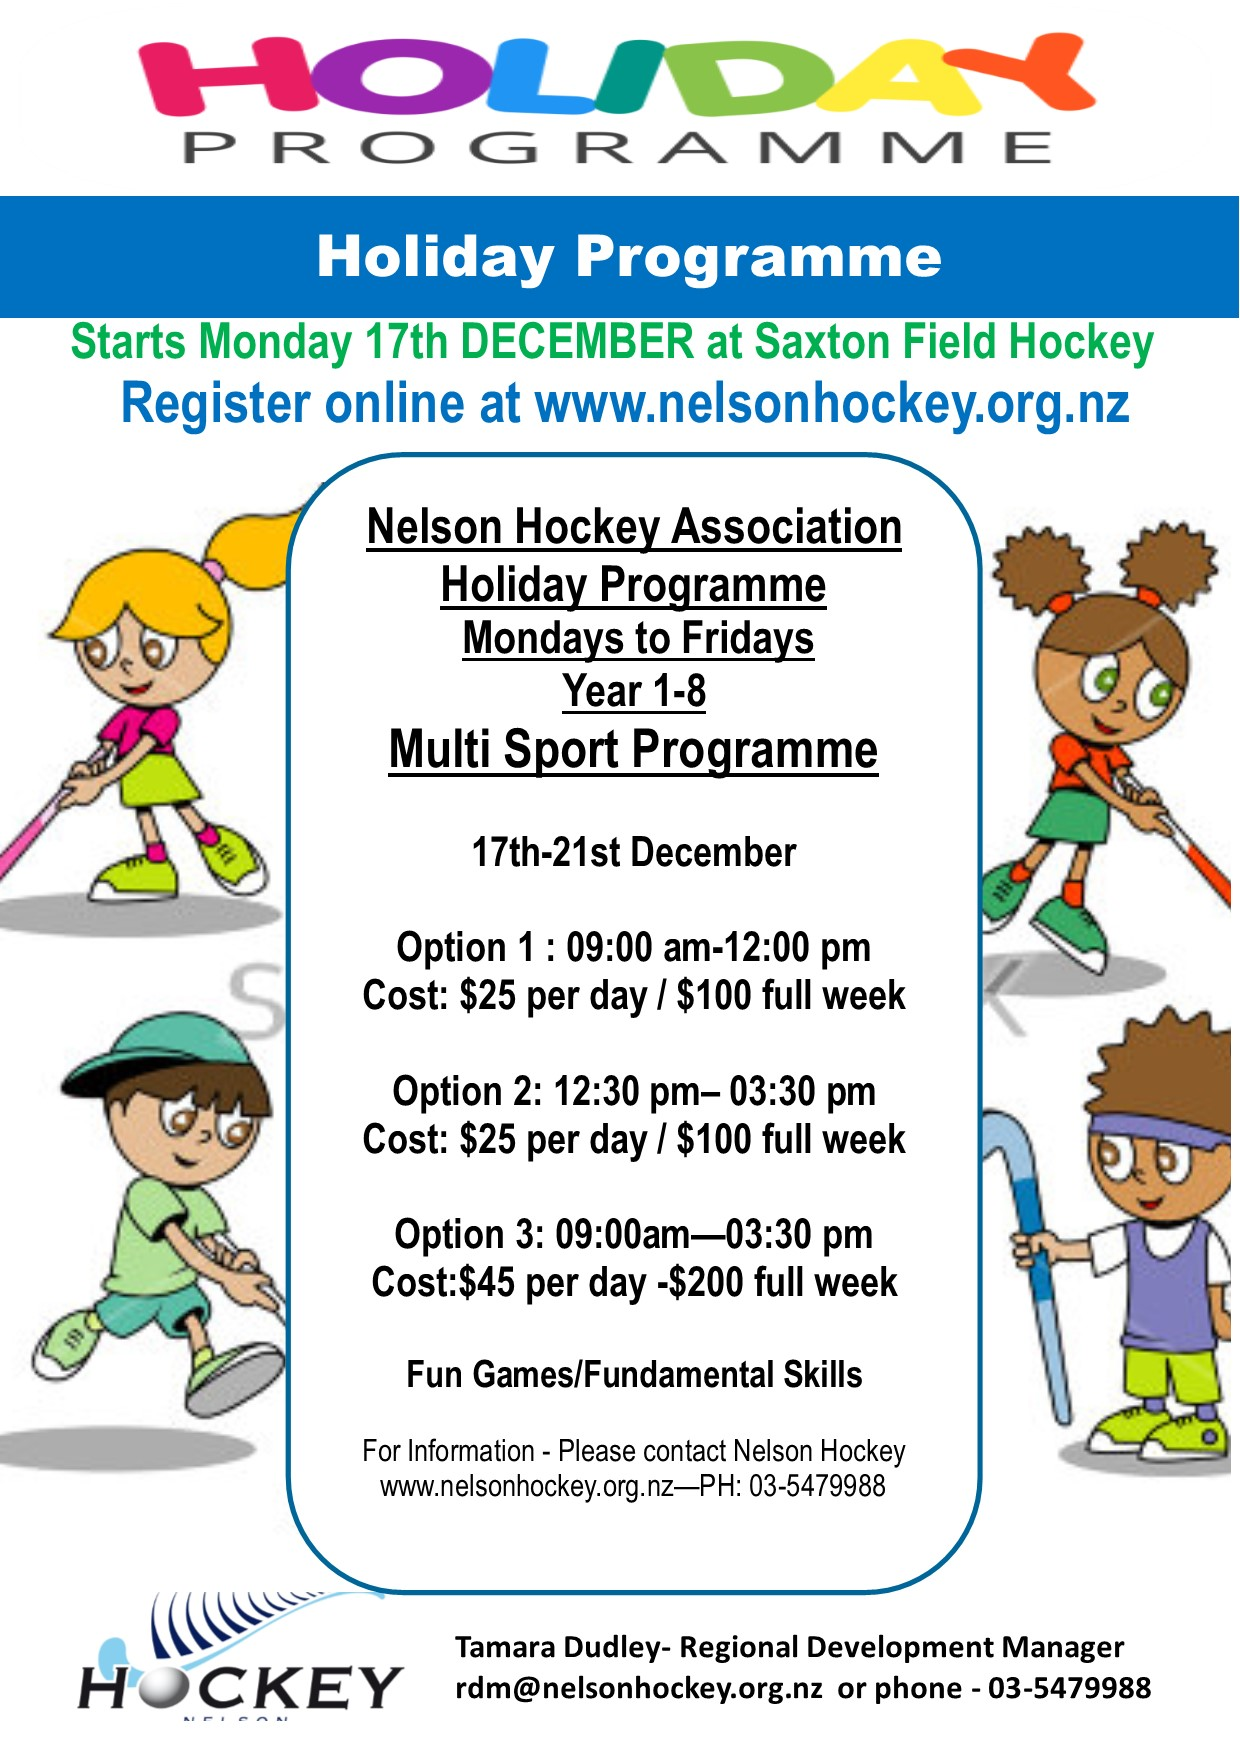 2018 NHA HOLIDAY PROGRAMME III REGISTRATIONS OPEN!!!- December 17th-21st